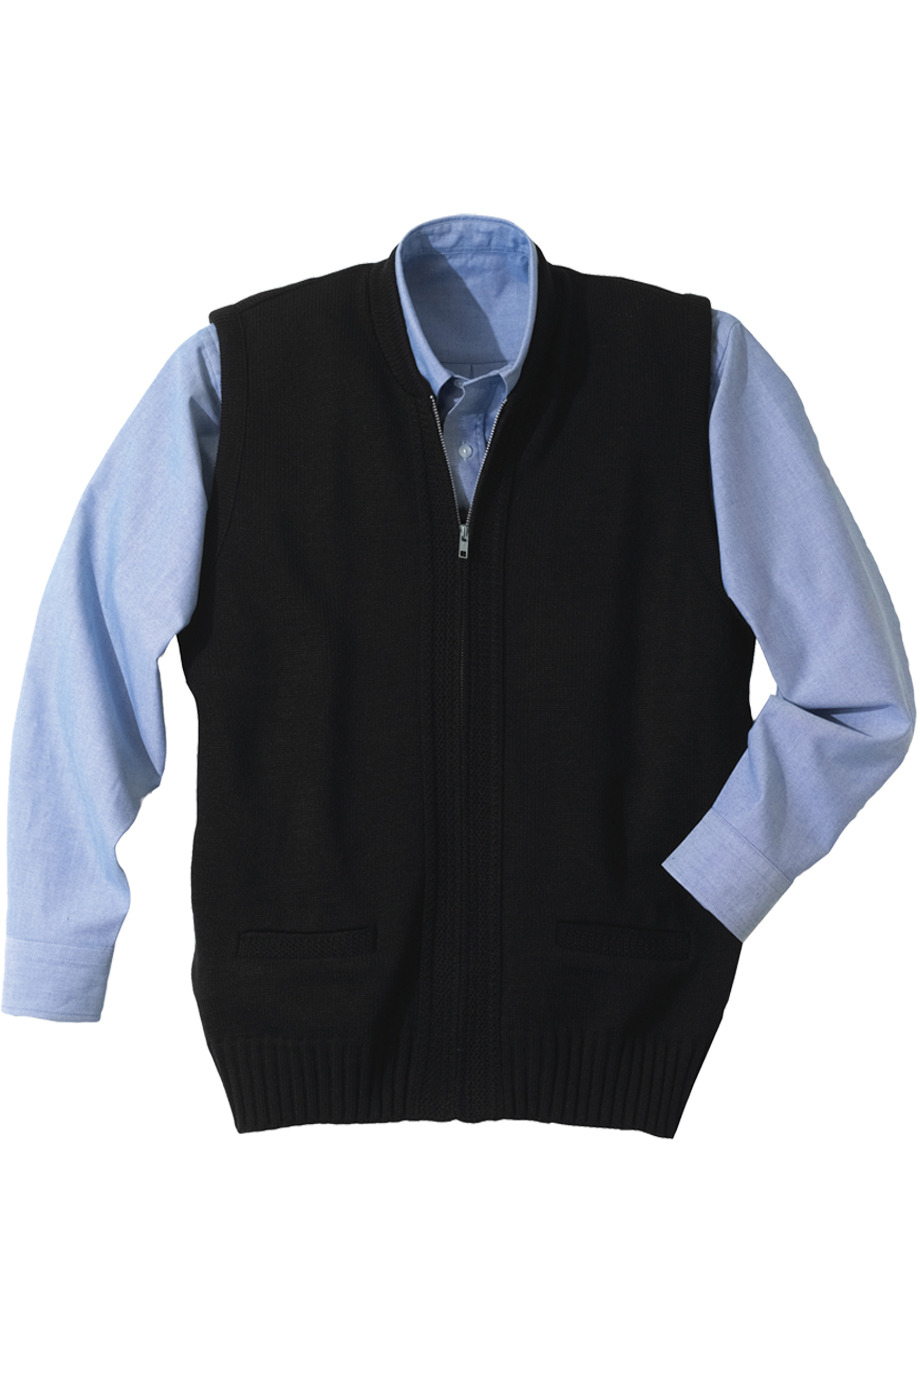 Edwards Garment 301 - Light Weight Zipper Vest